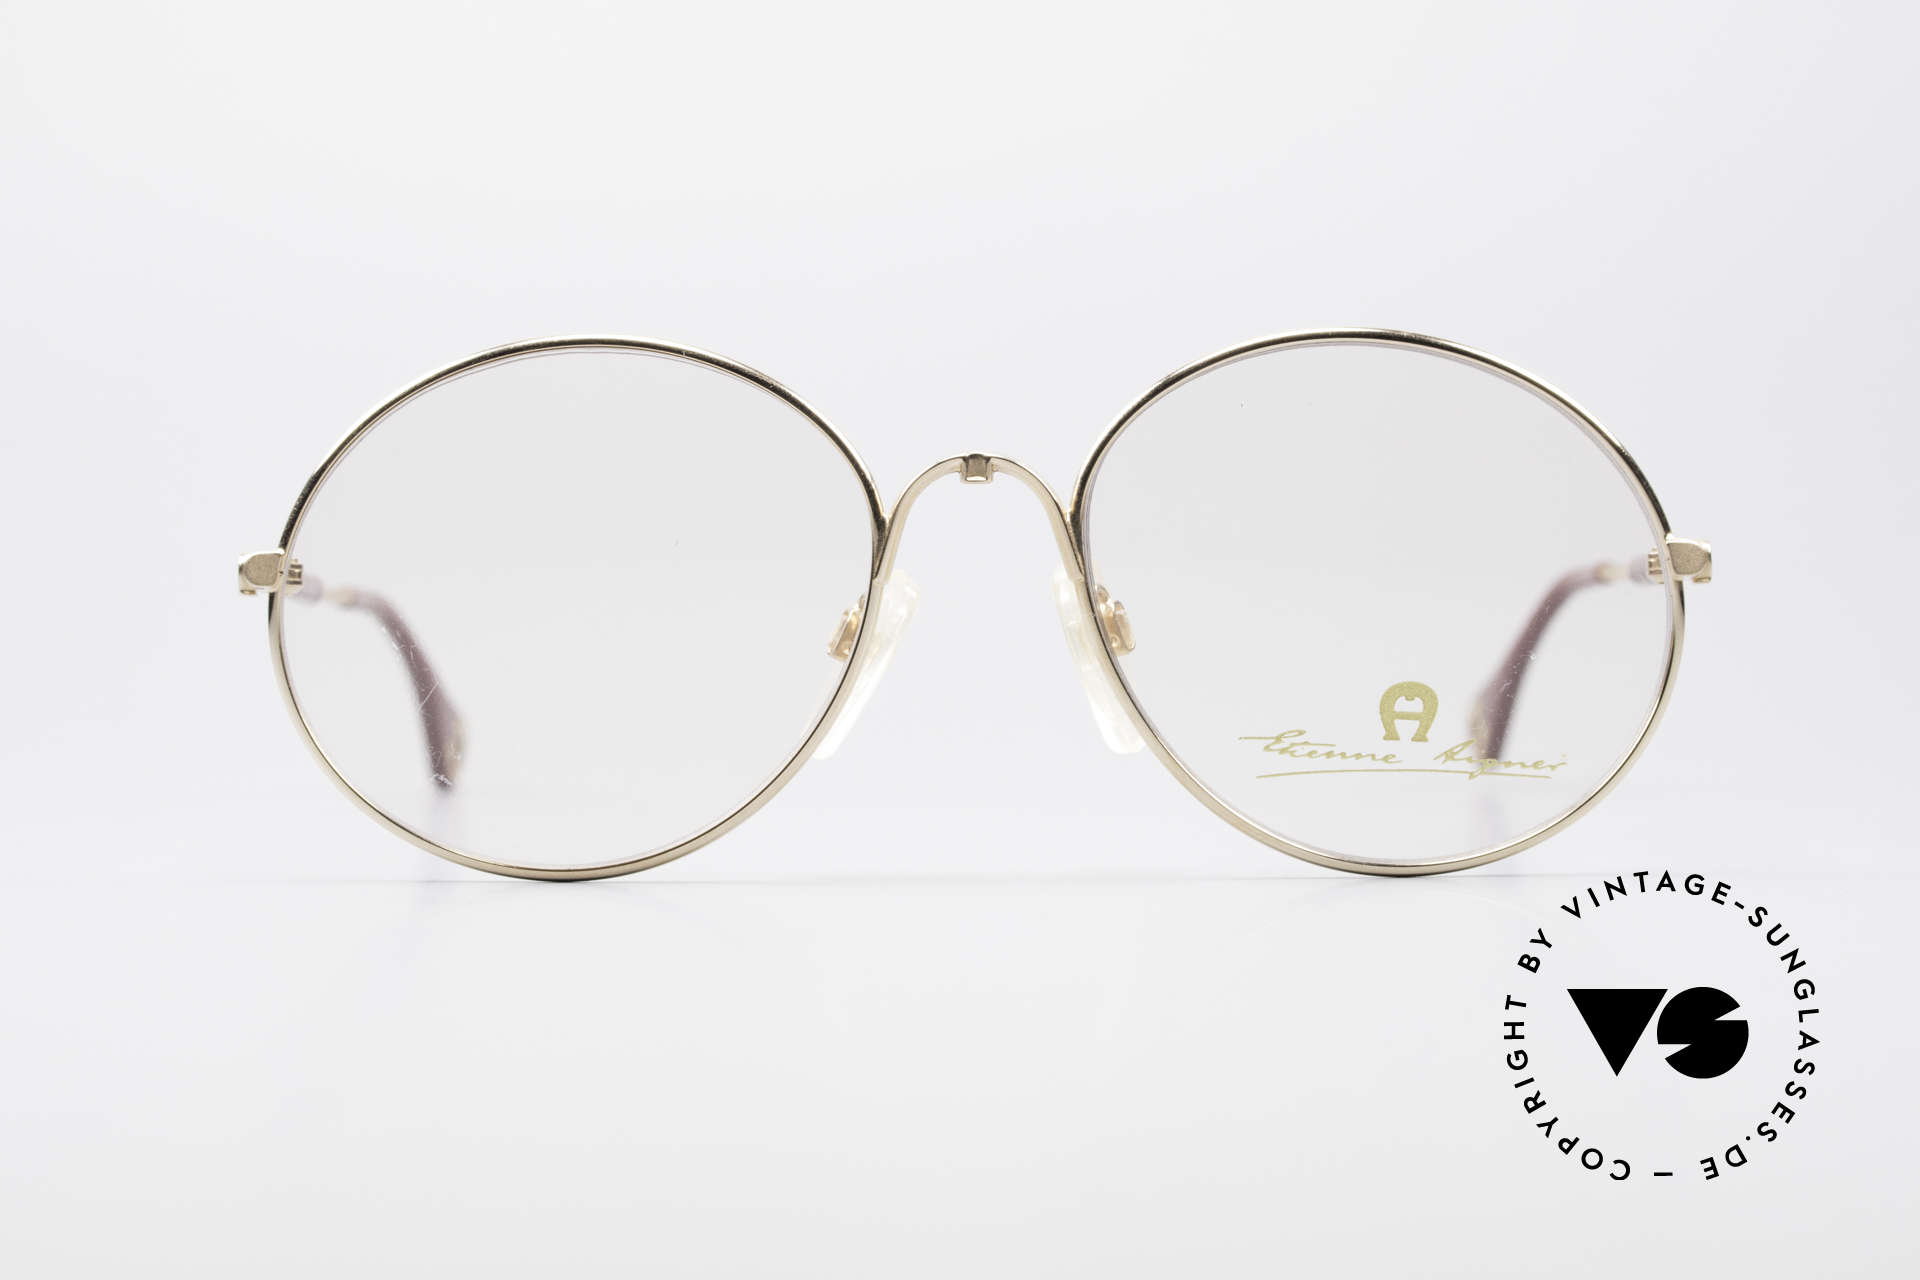 Aigner EA13 Round 80's Luxury Glasses, round unisex frame in small / medium size 53/18, Made for Men and Women